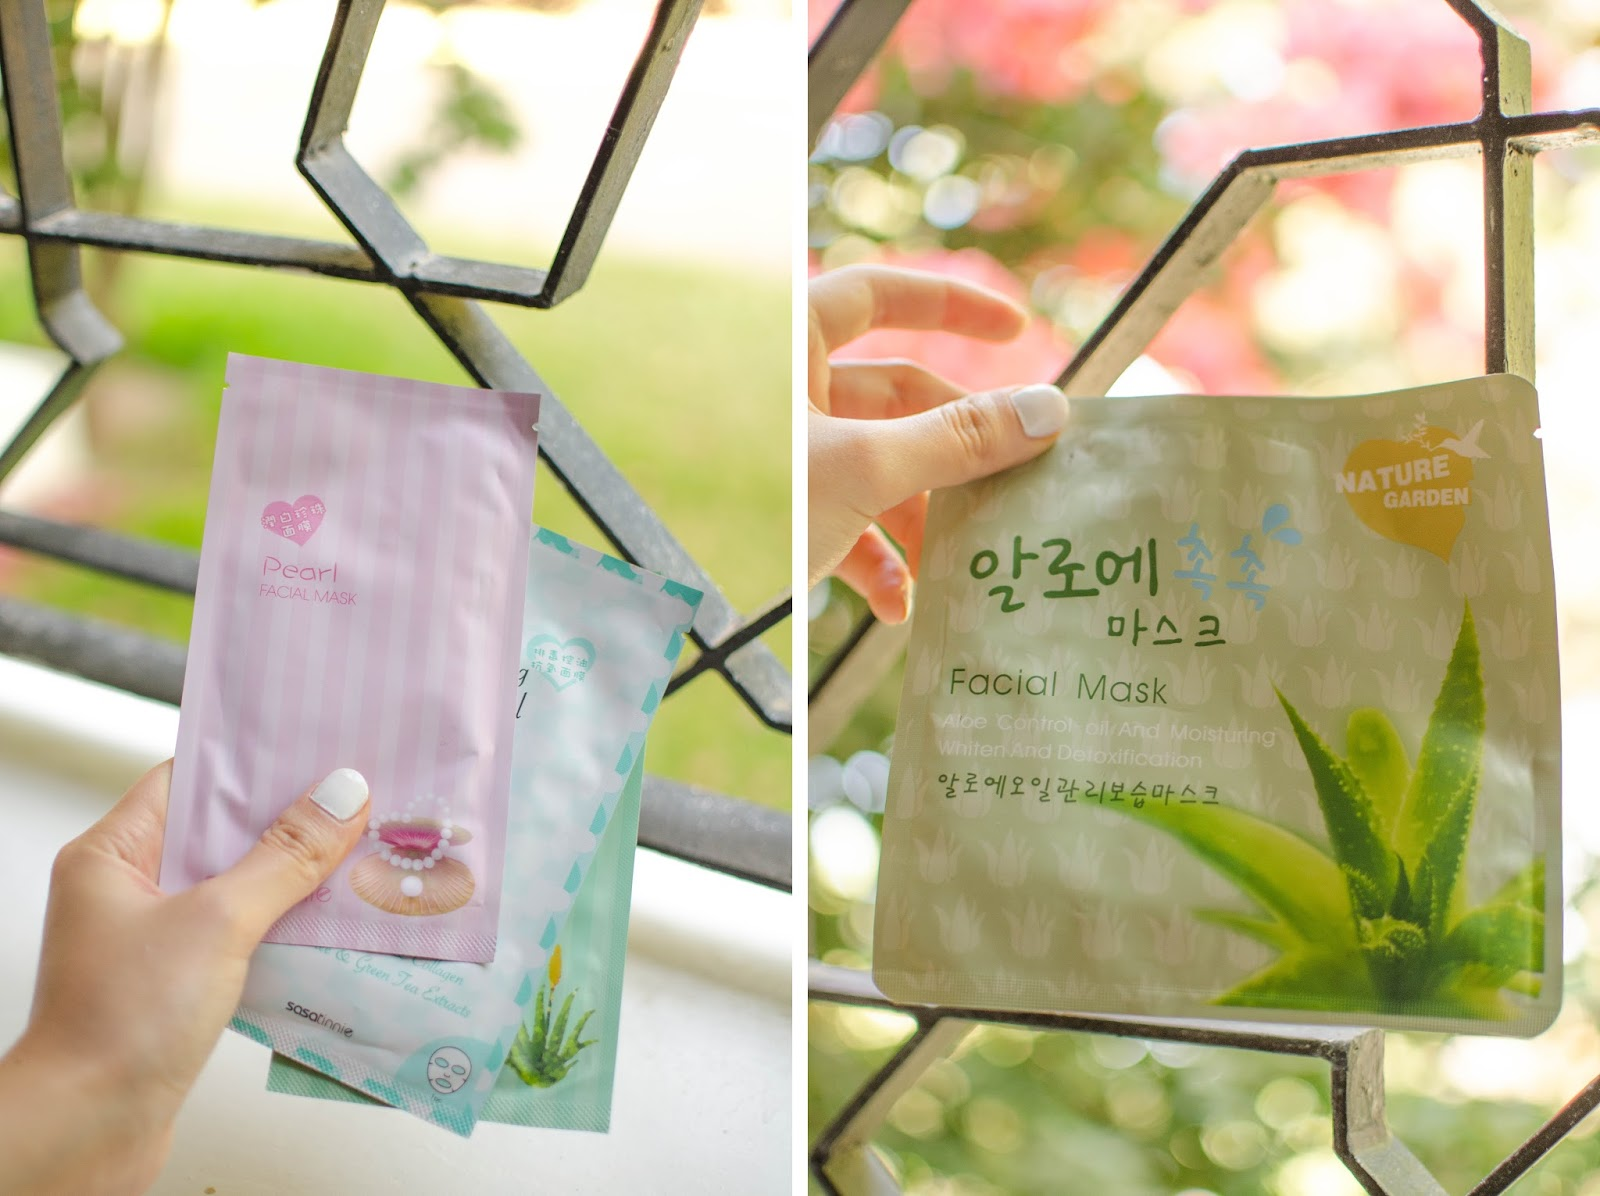 chiness, japanese and korean face masks